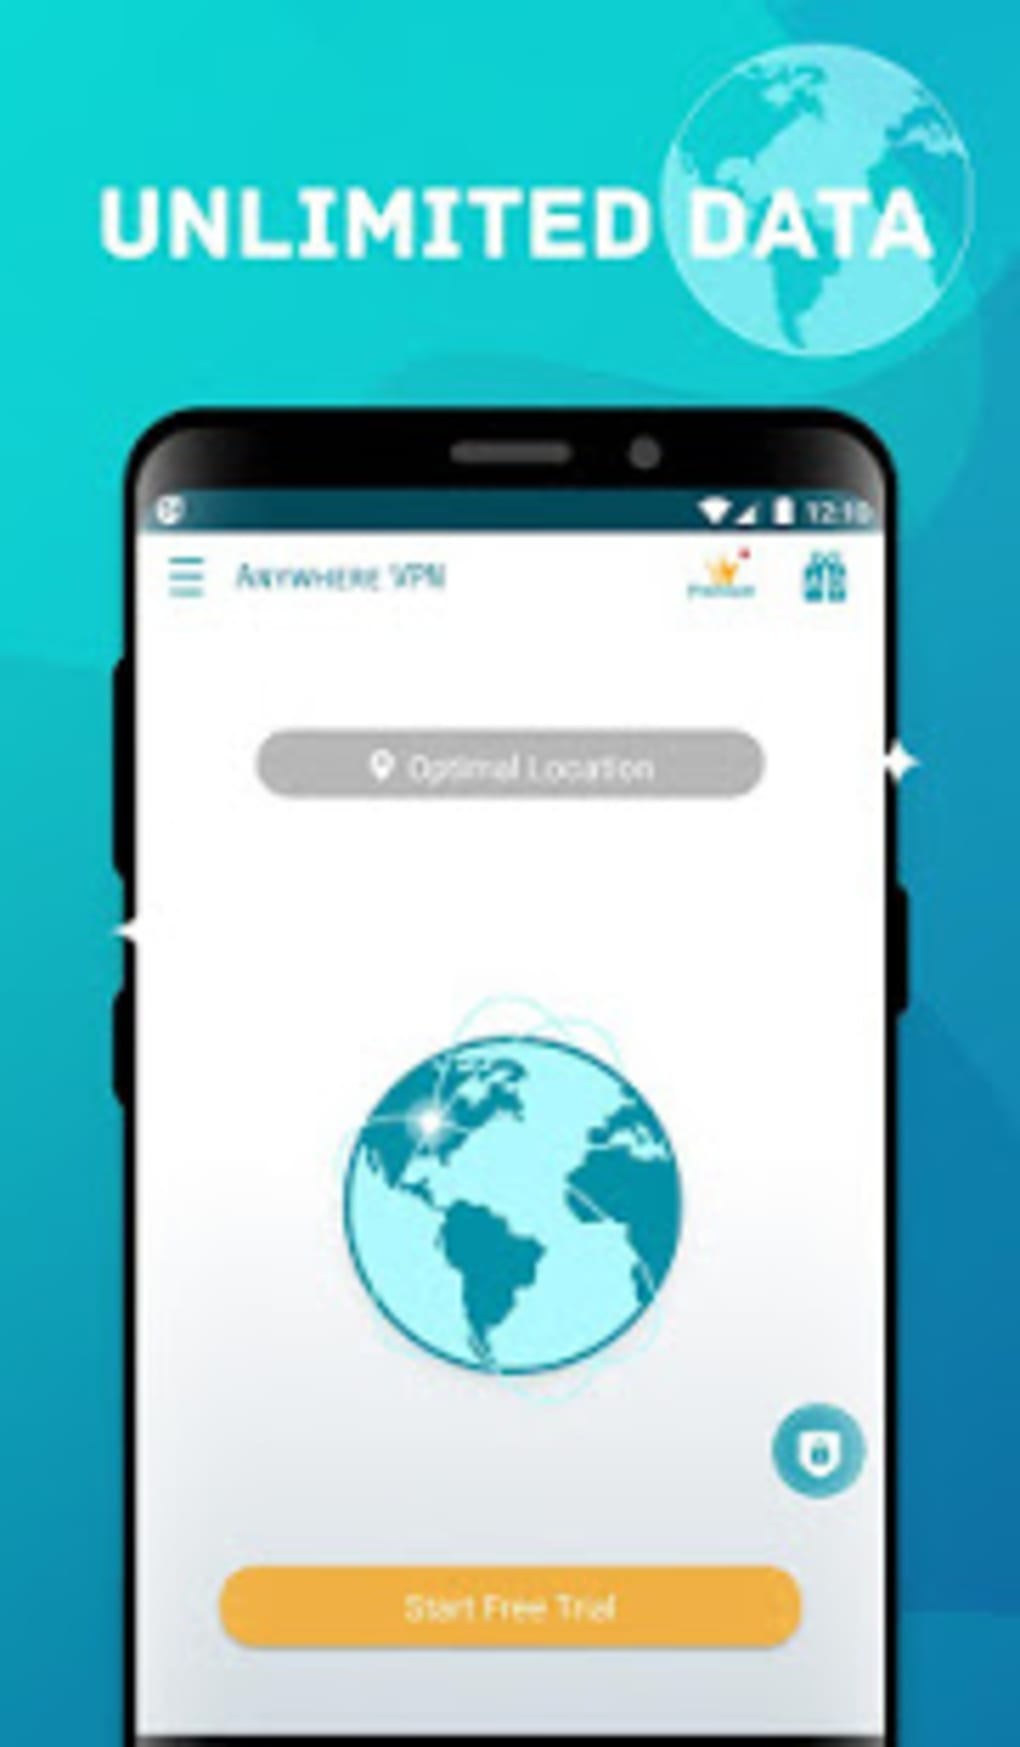 Anywhere VPN -Secure Free Unlimited VPN Proxy WiFi for